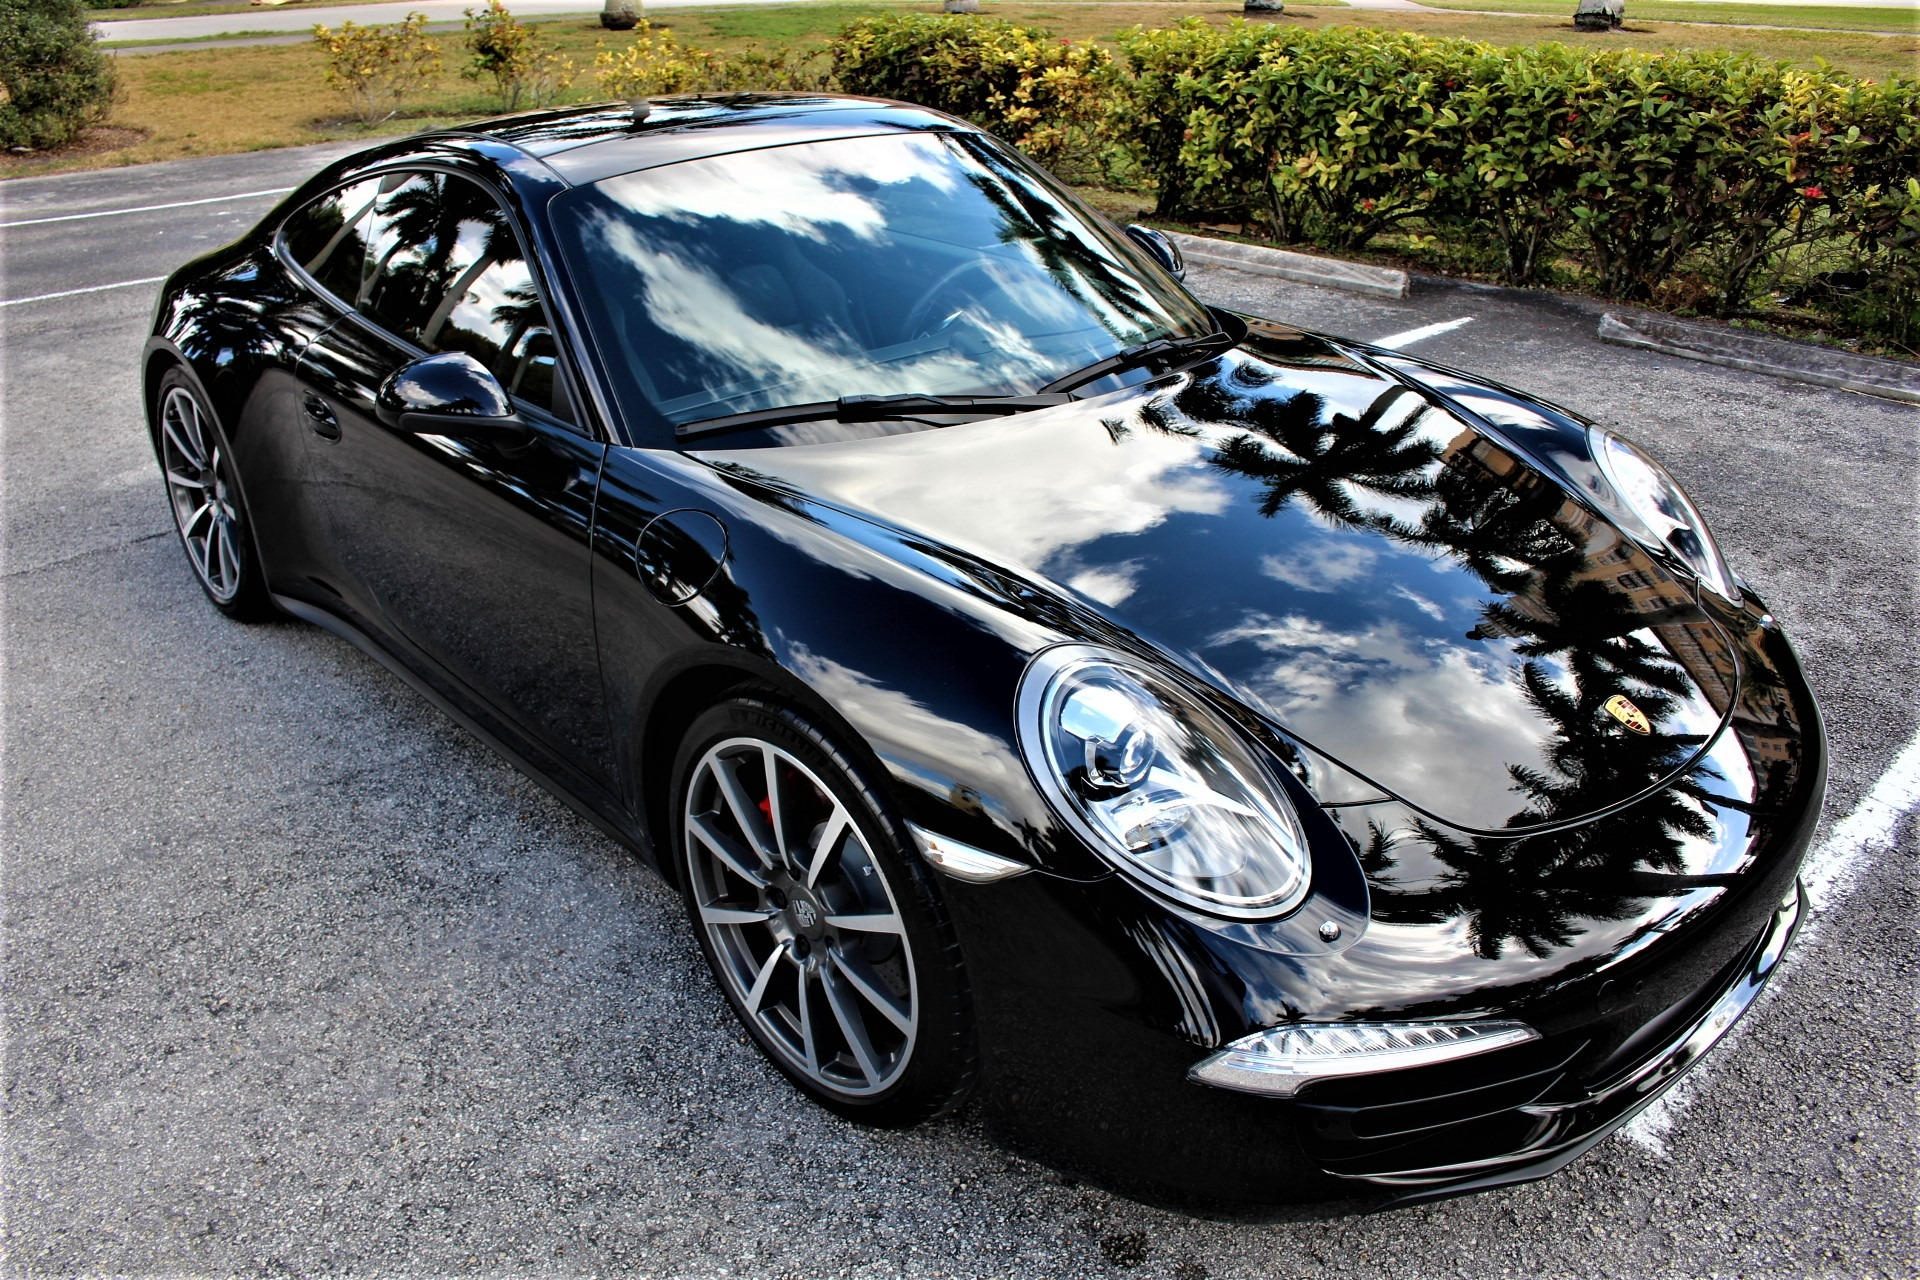 Used 2013 Porsche 911 Carrera 4S for sale Sold at The Gables Sports Cars in Miami FL 33146 4